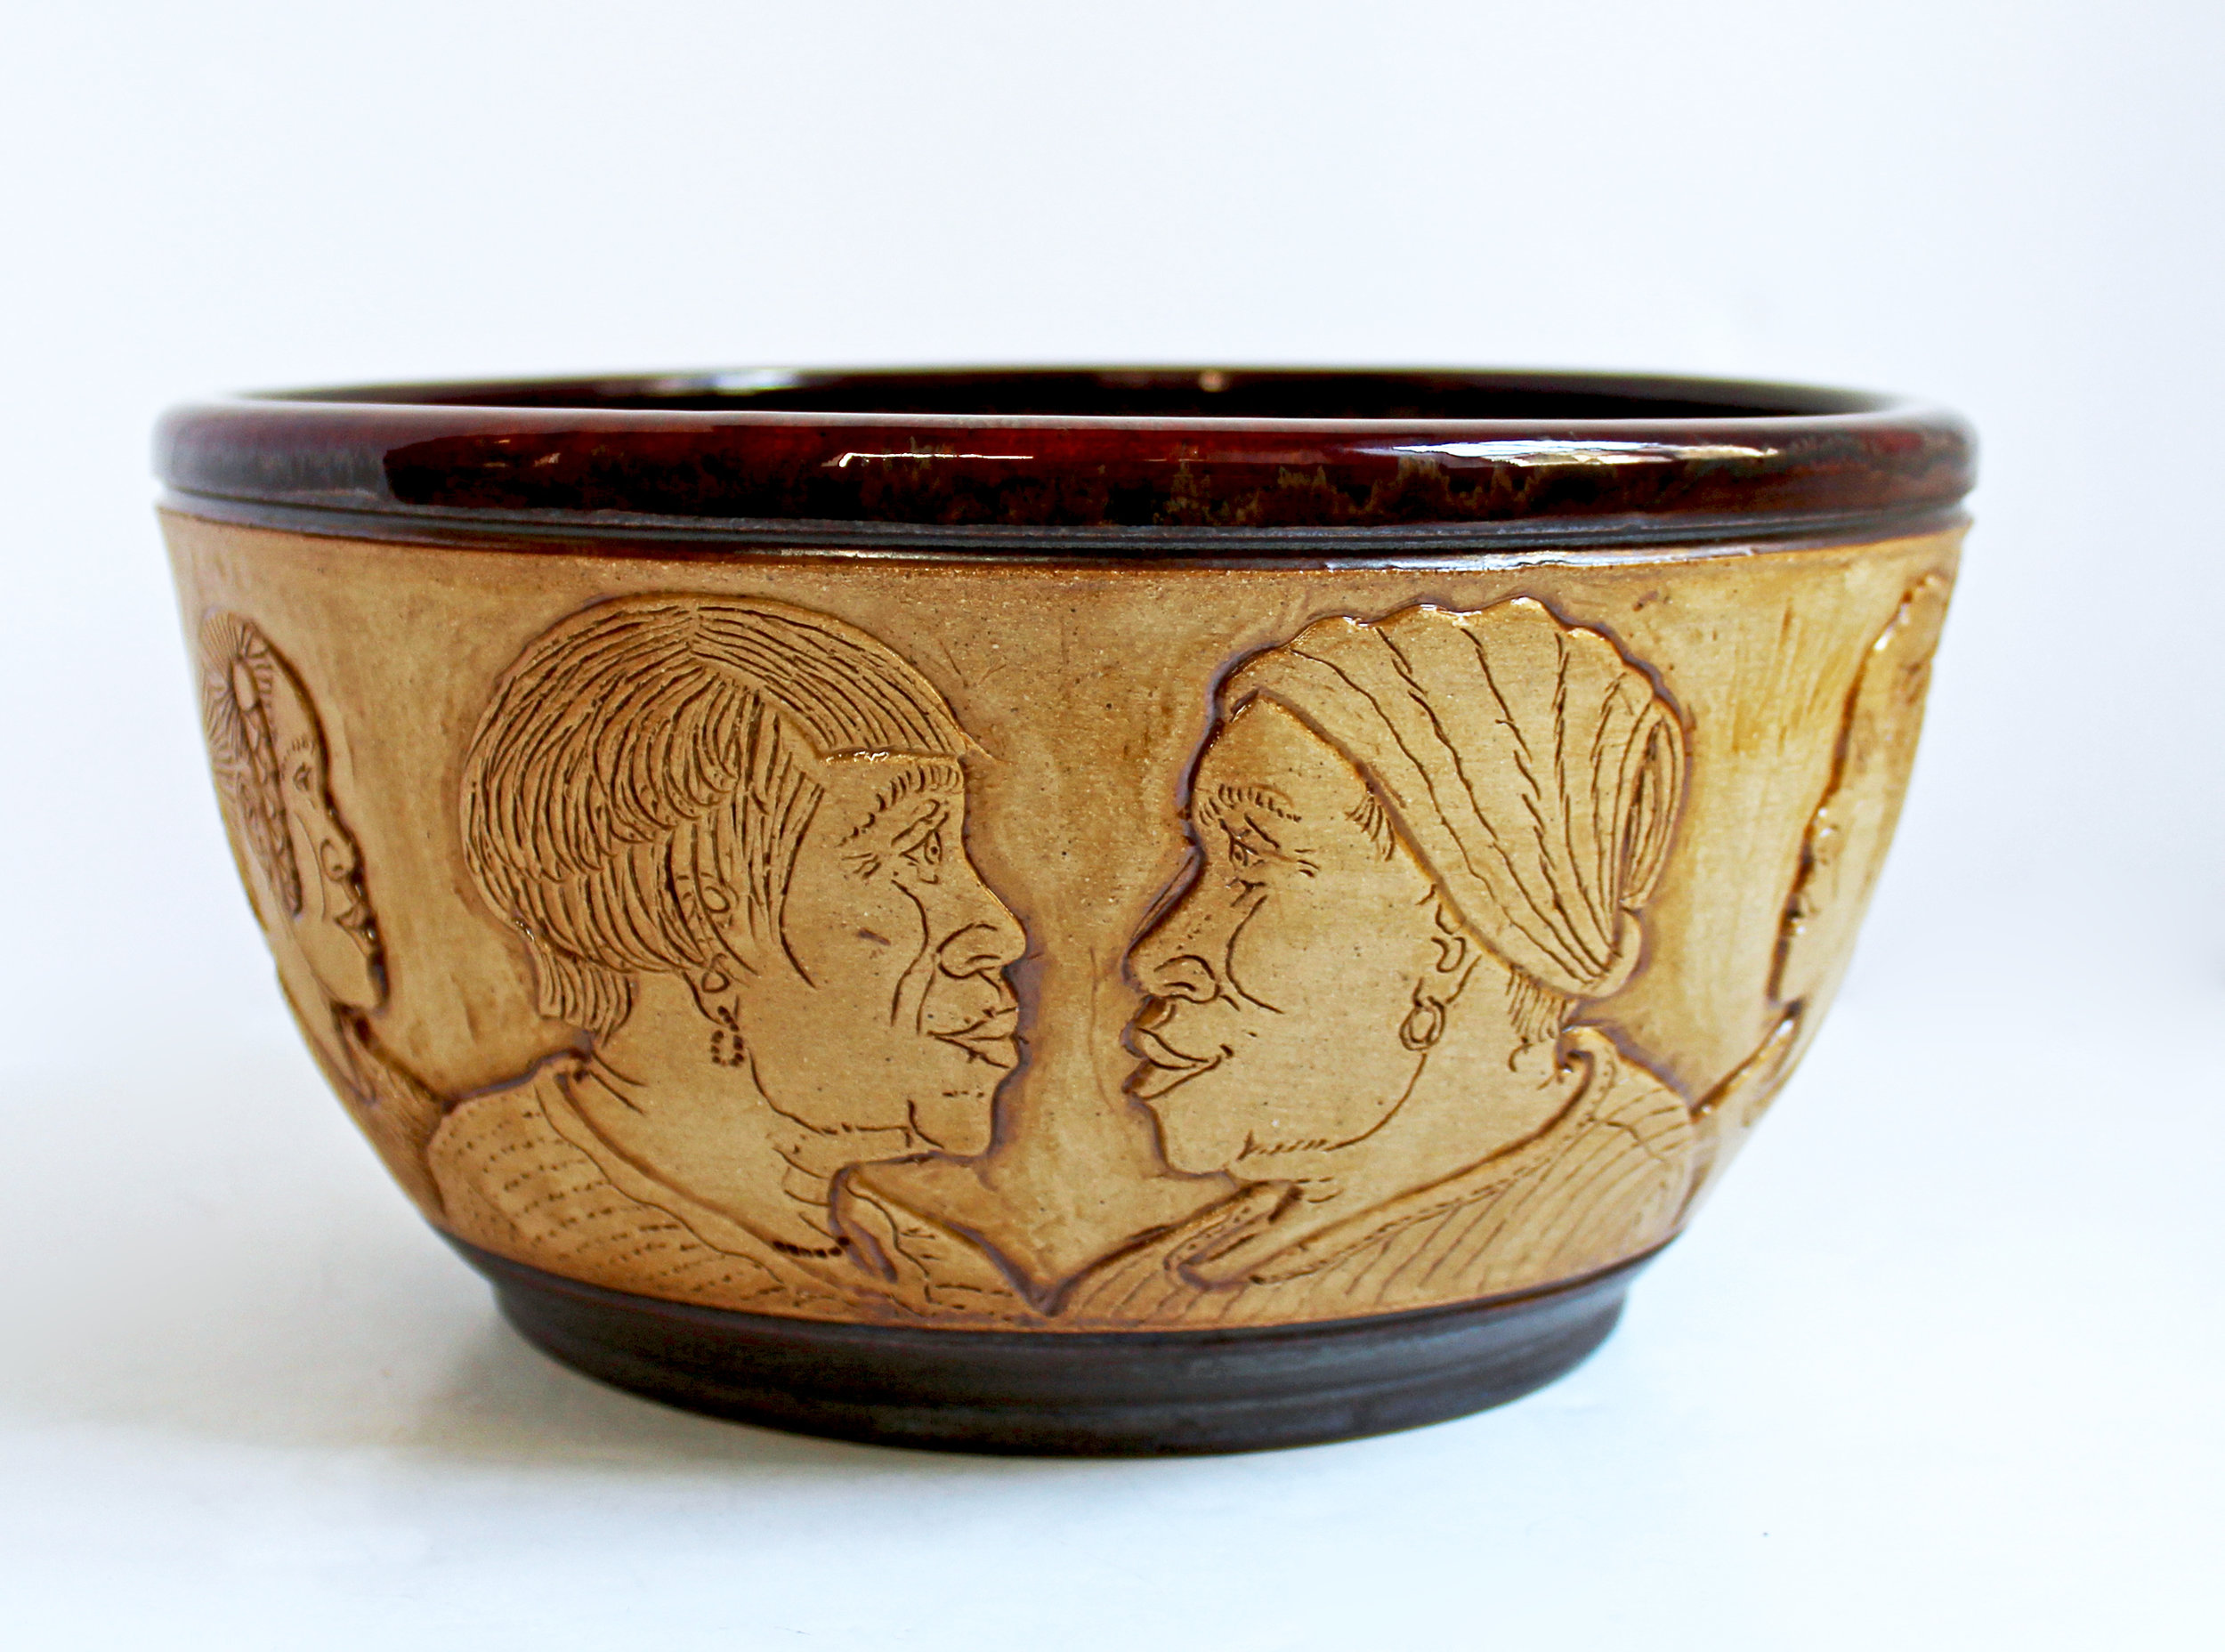 Etched face Bowl